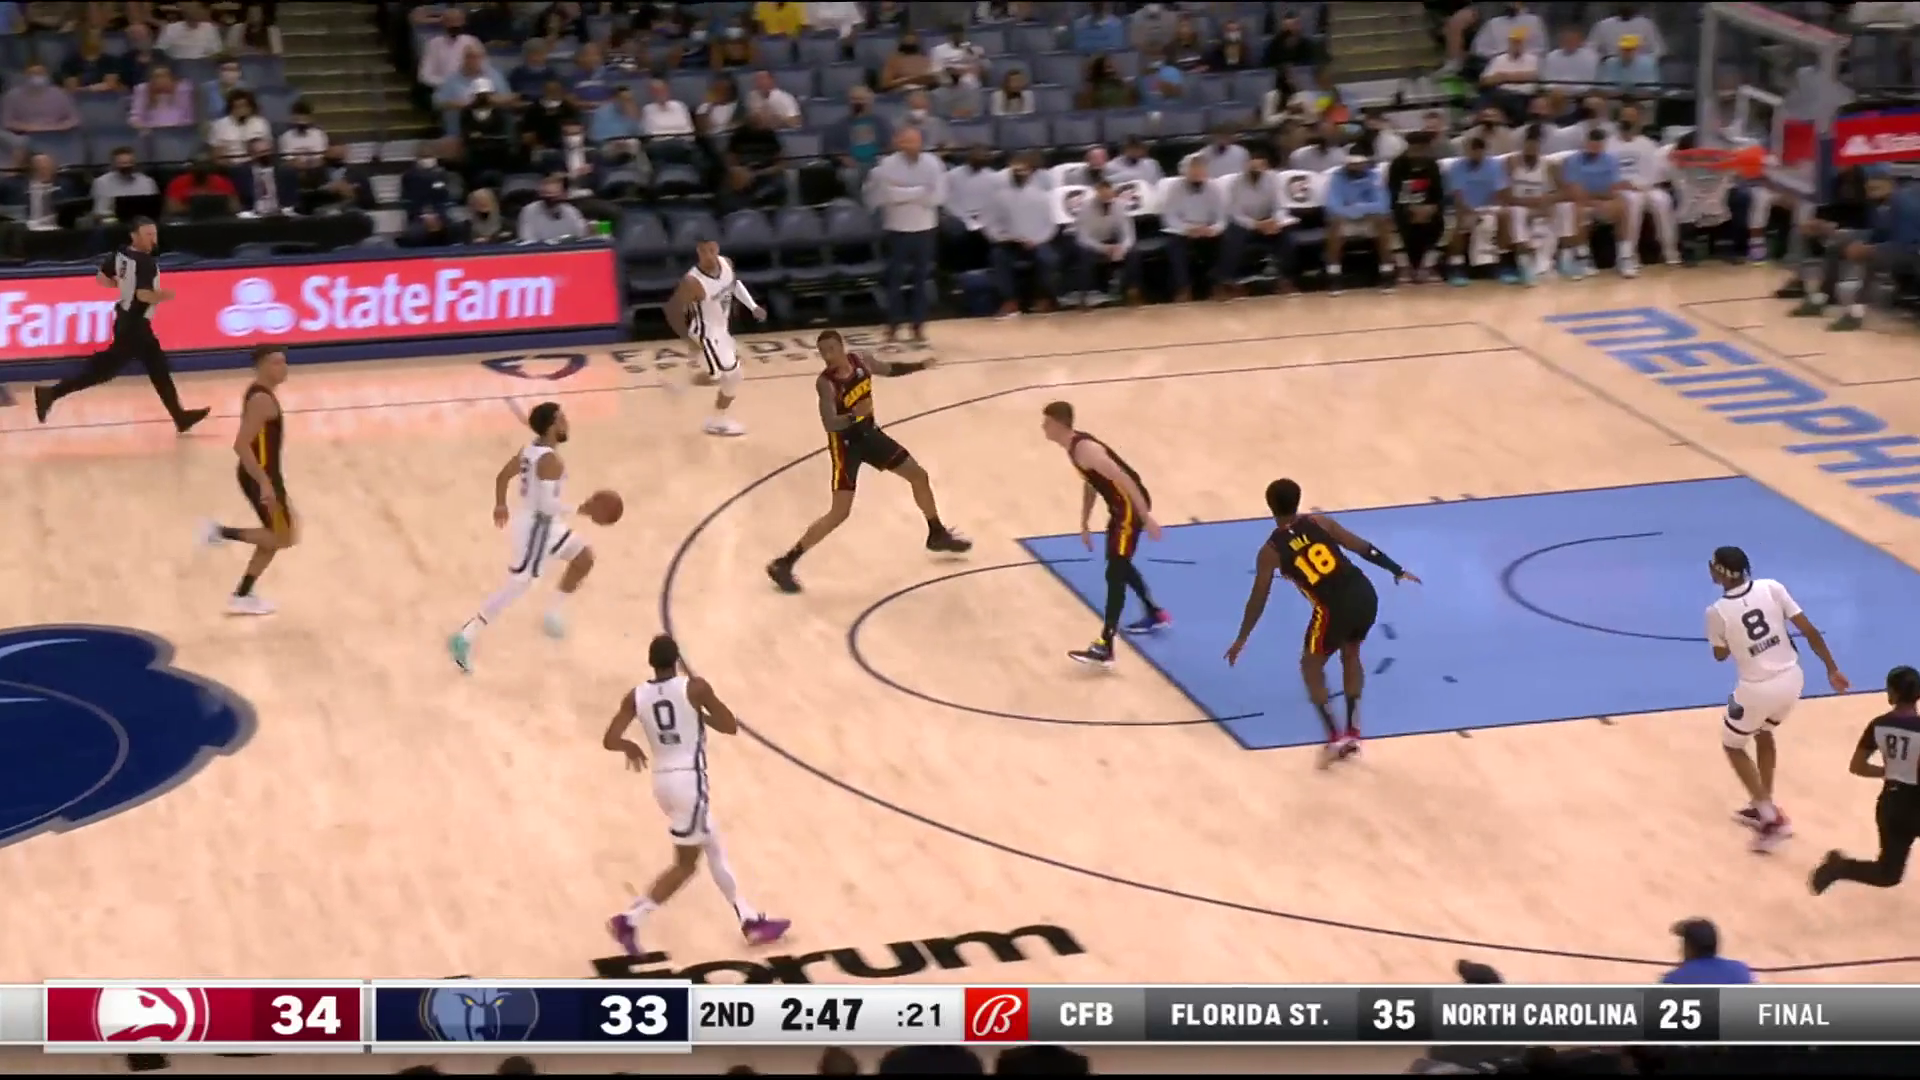 Ziaire Williams feeds Santi for an easy bucket through contact